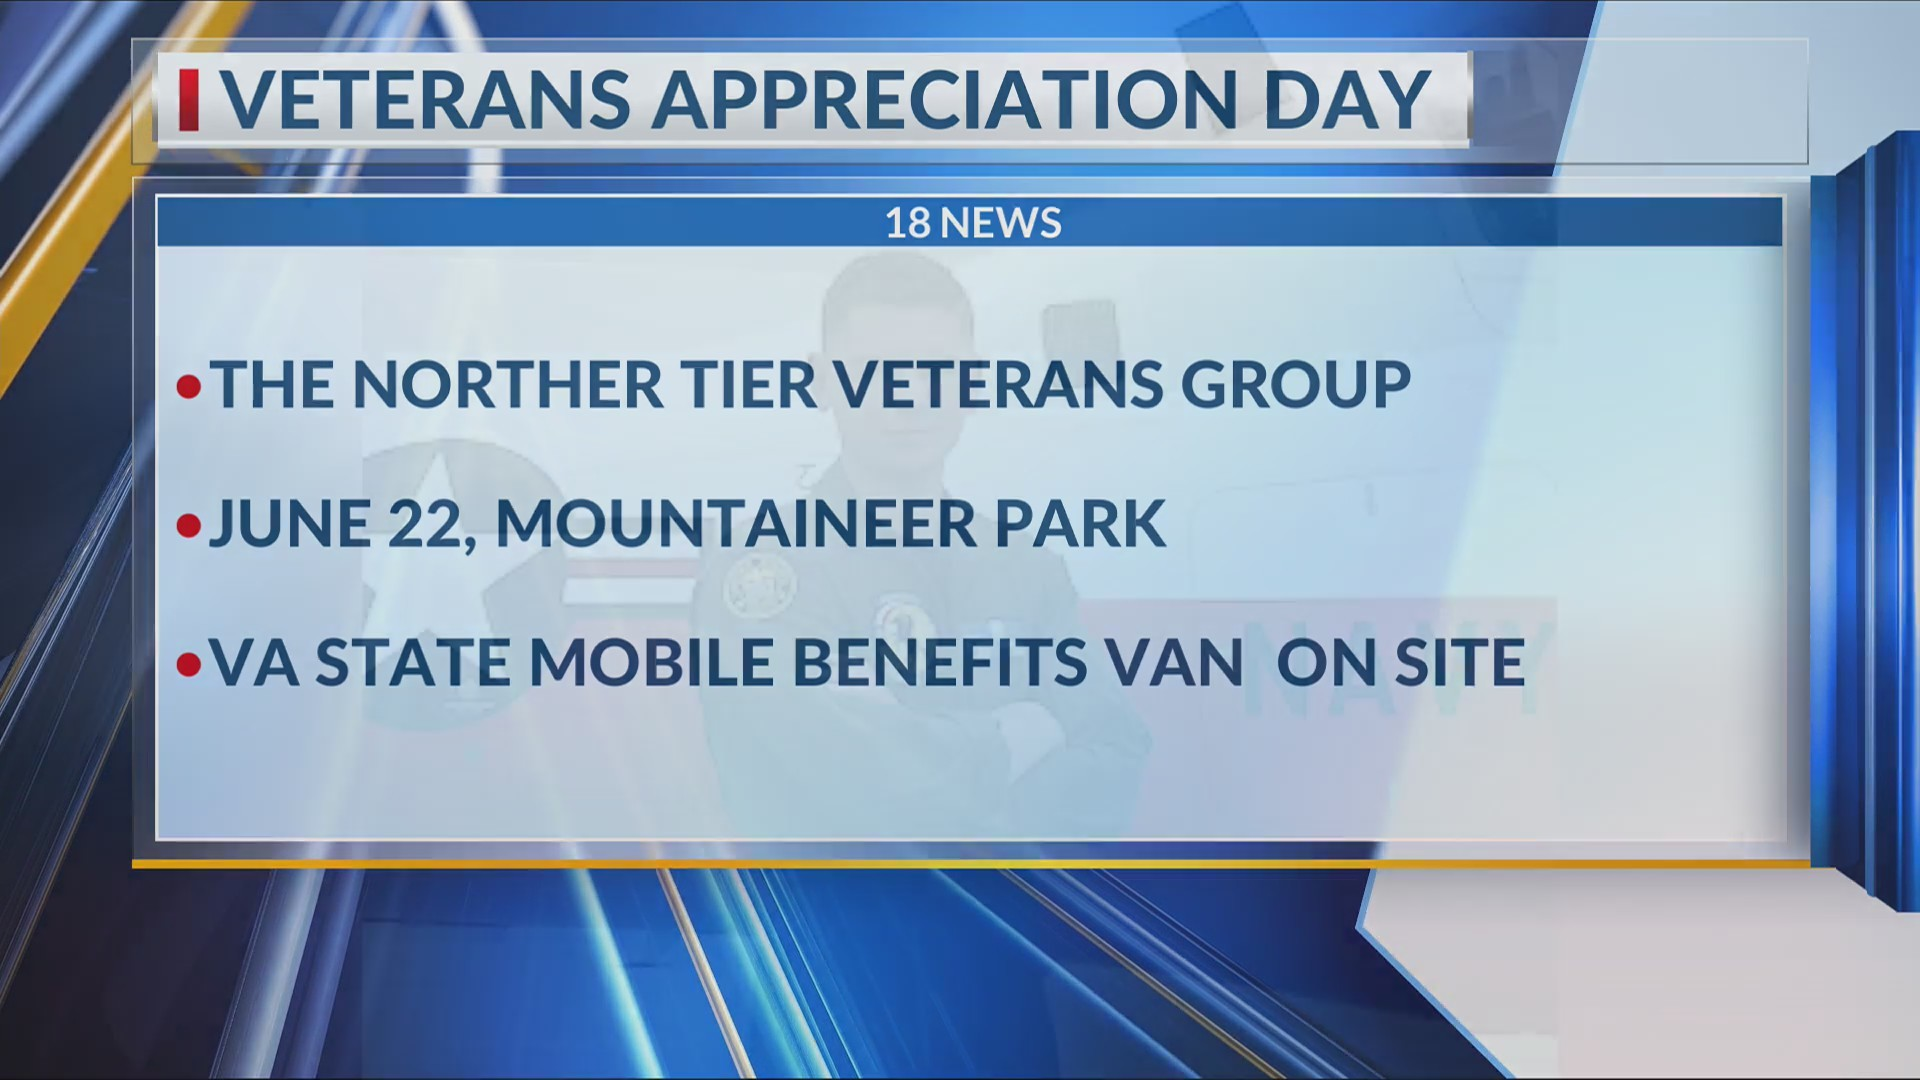 Veterans Appreciation Day